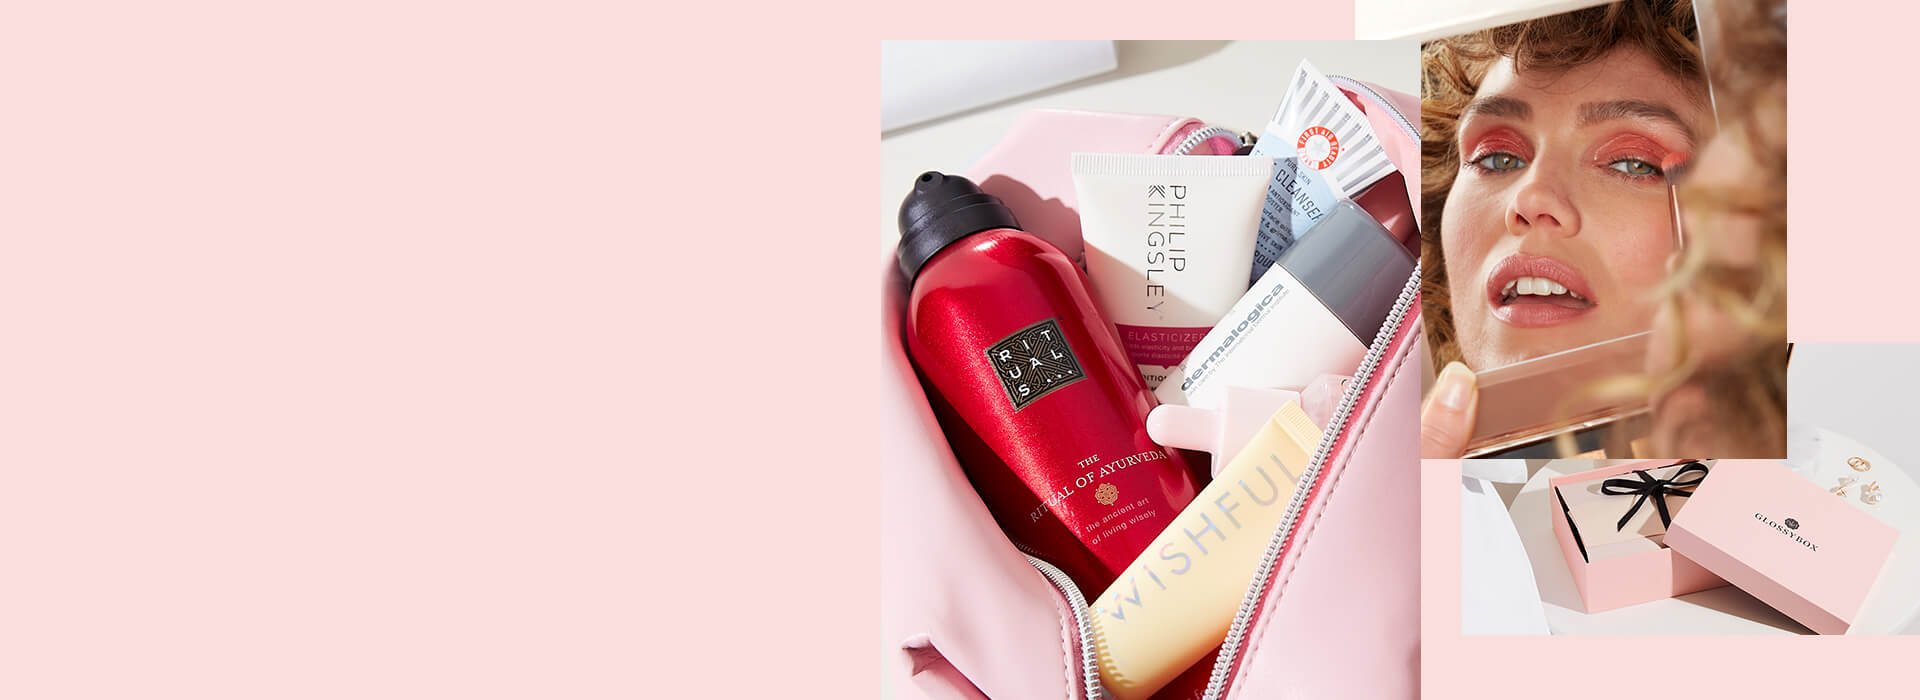 Give GLOSSYBOX as a gift